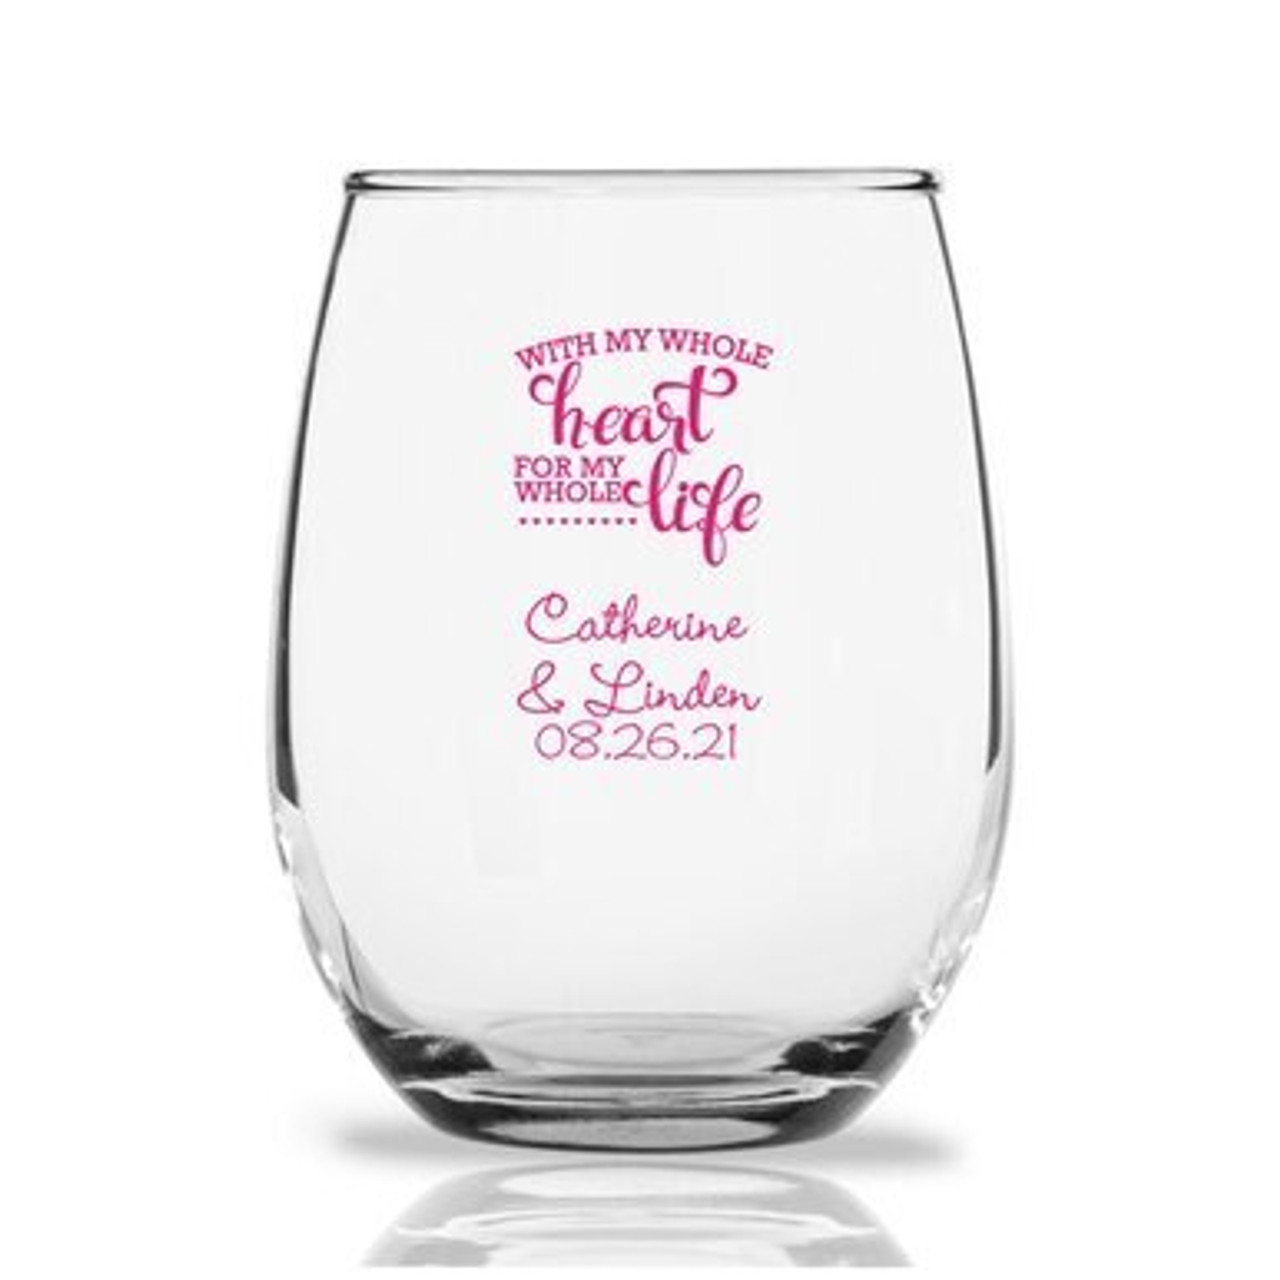 Made in USA Proud Navy Wife Stemless Wine Glass 15 oz Home ...